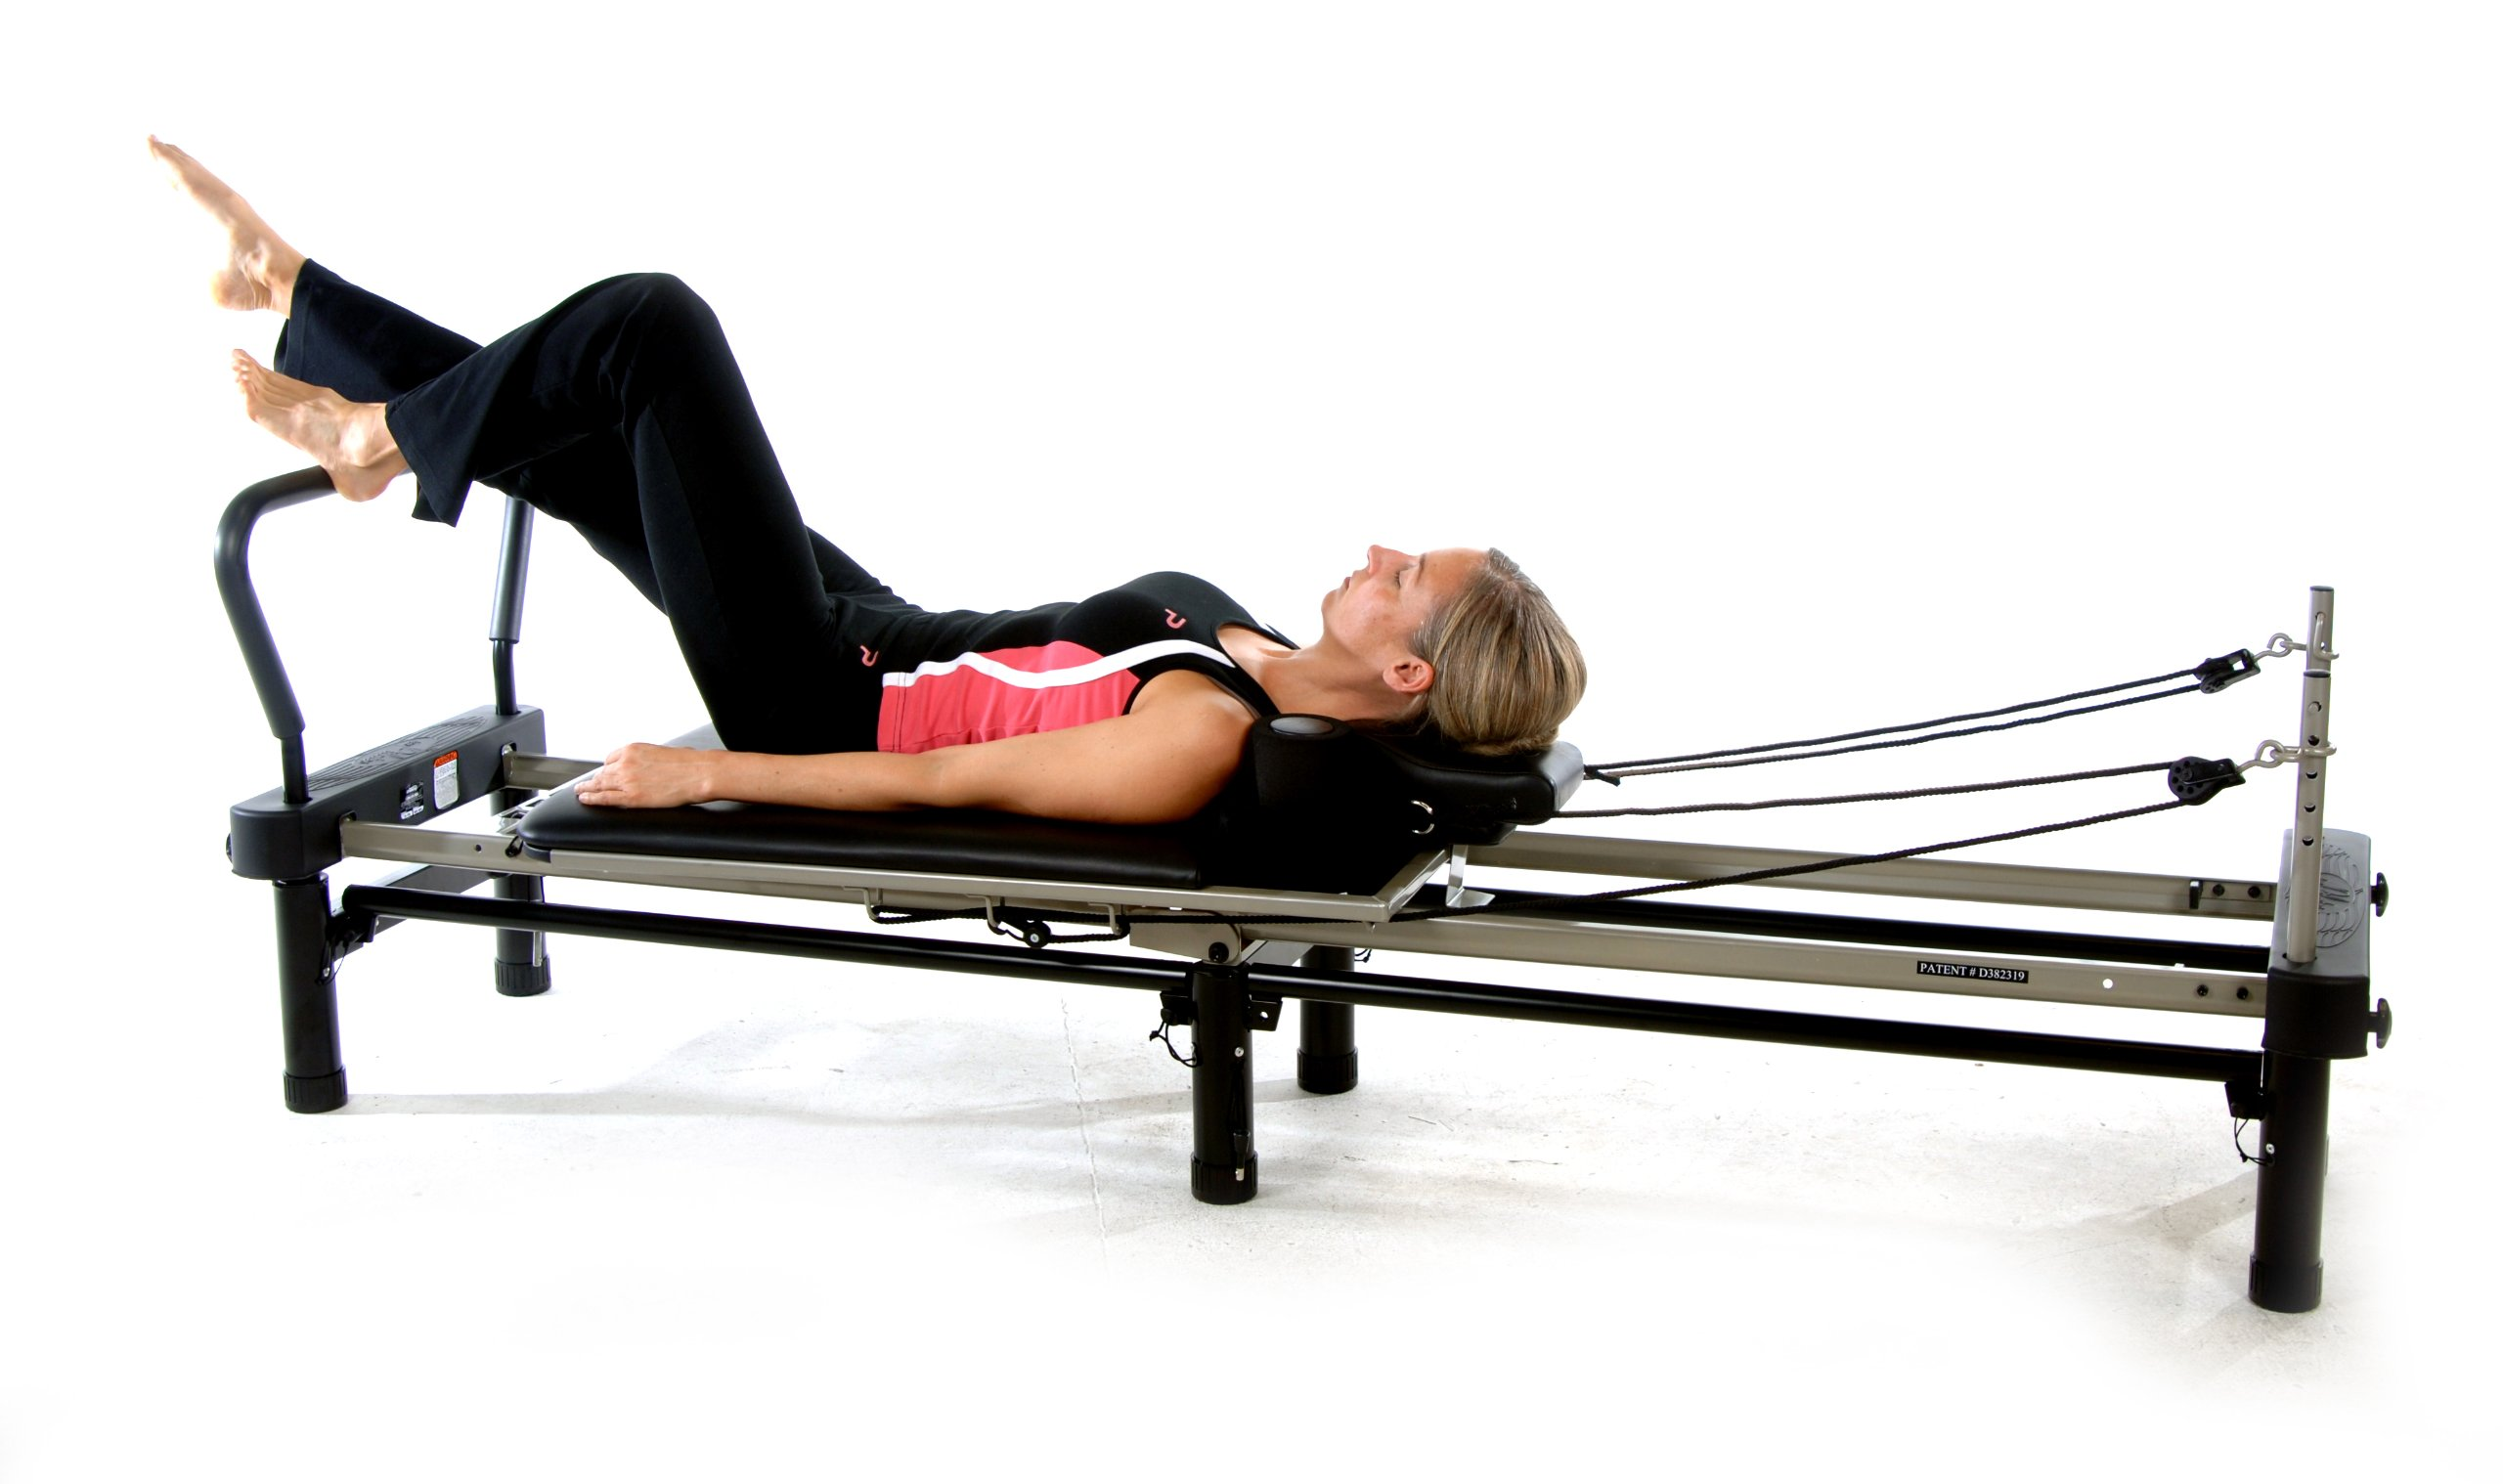 Stamina AeroPilates 700 Premier Reformer with Stand, Cardio Rebounder, Neck Pillow and DVDs by Stamina (Image #11)